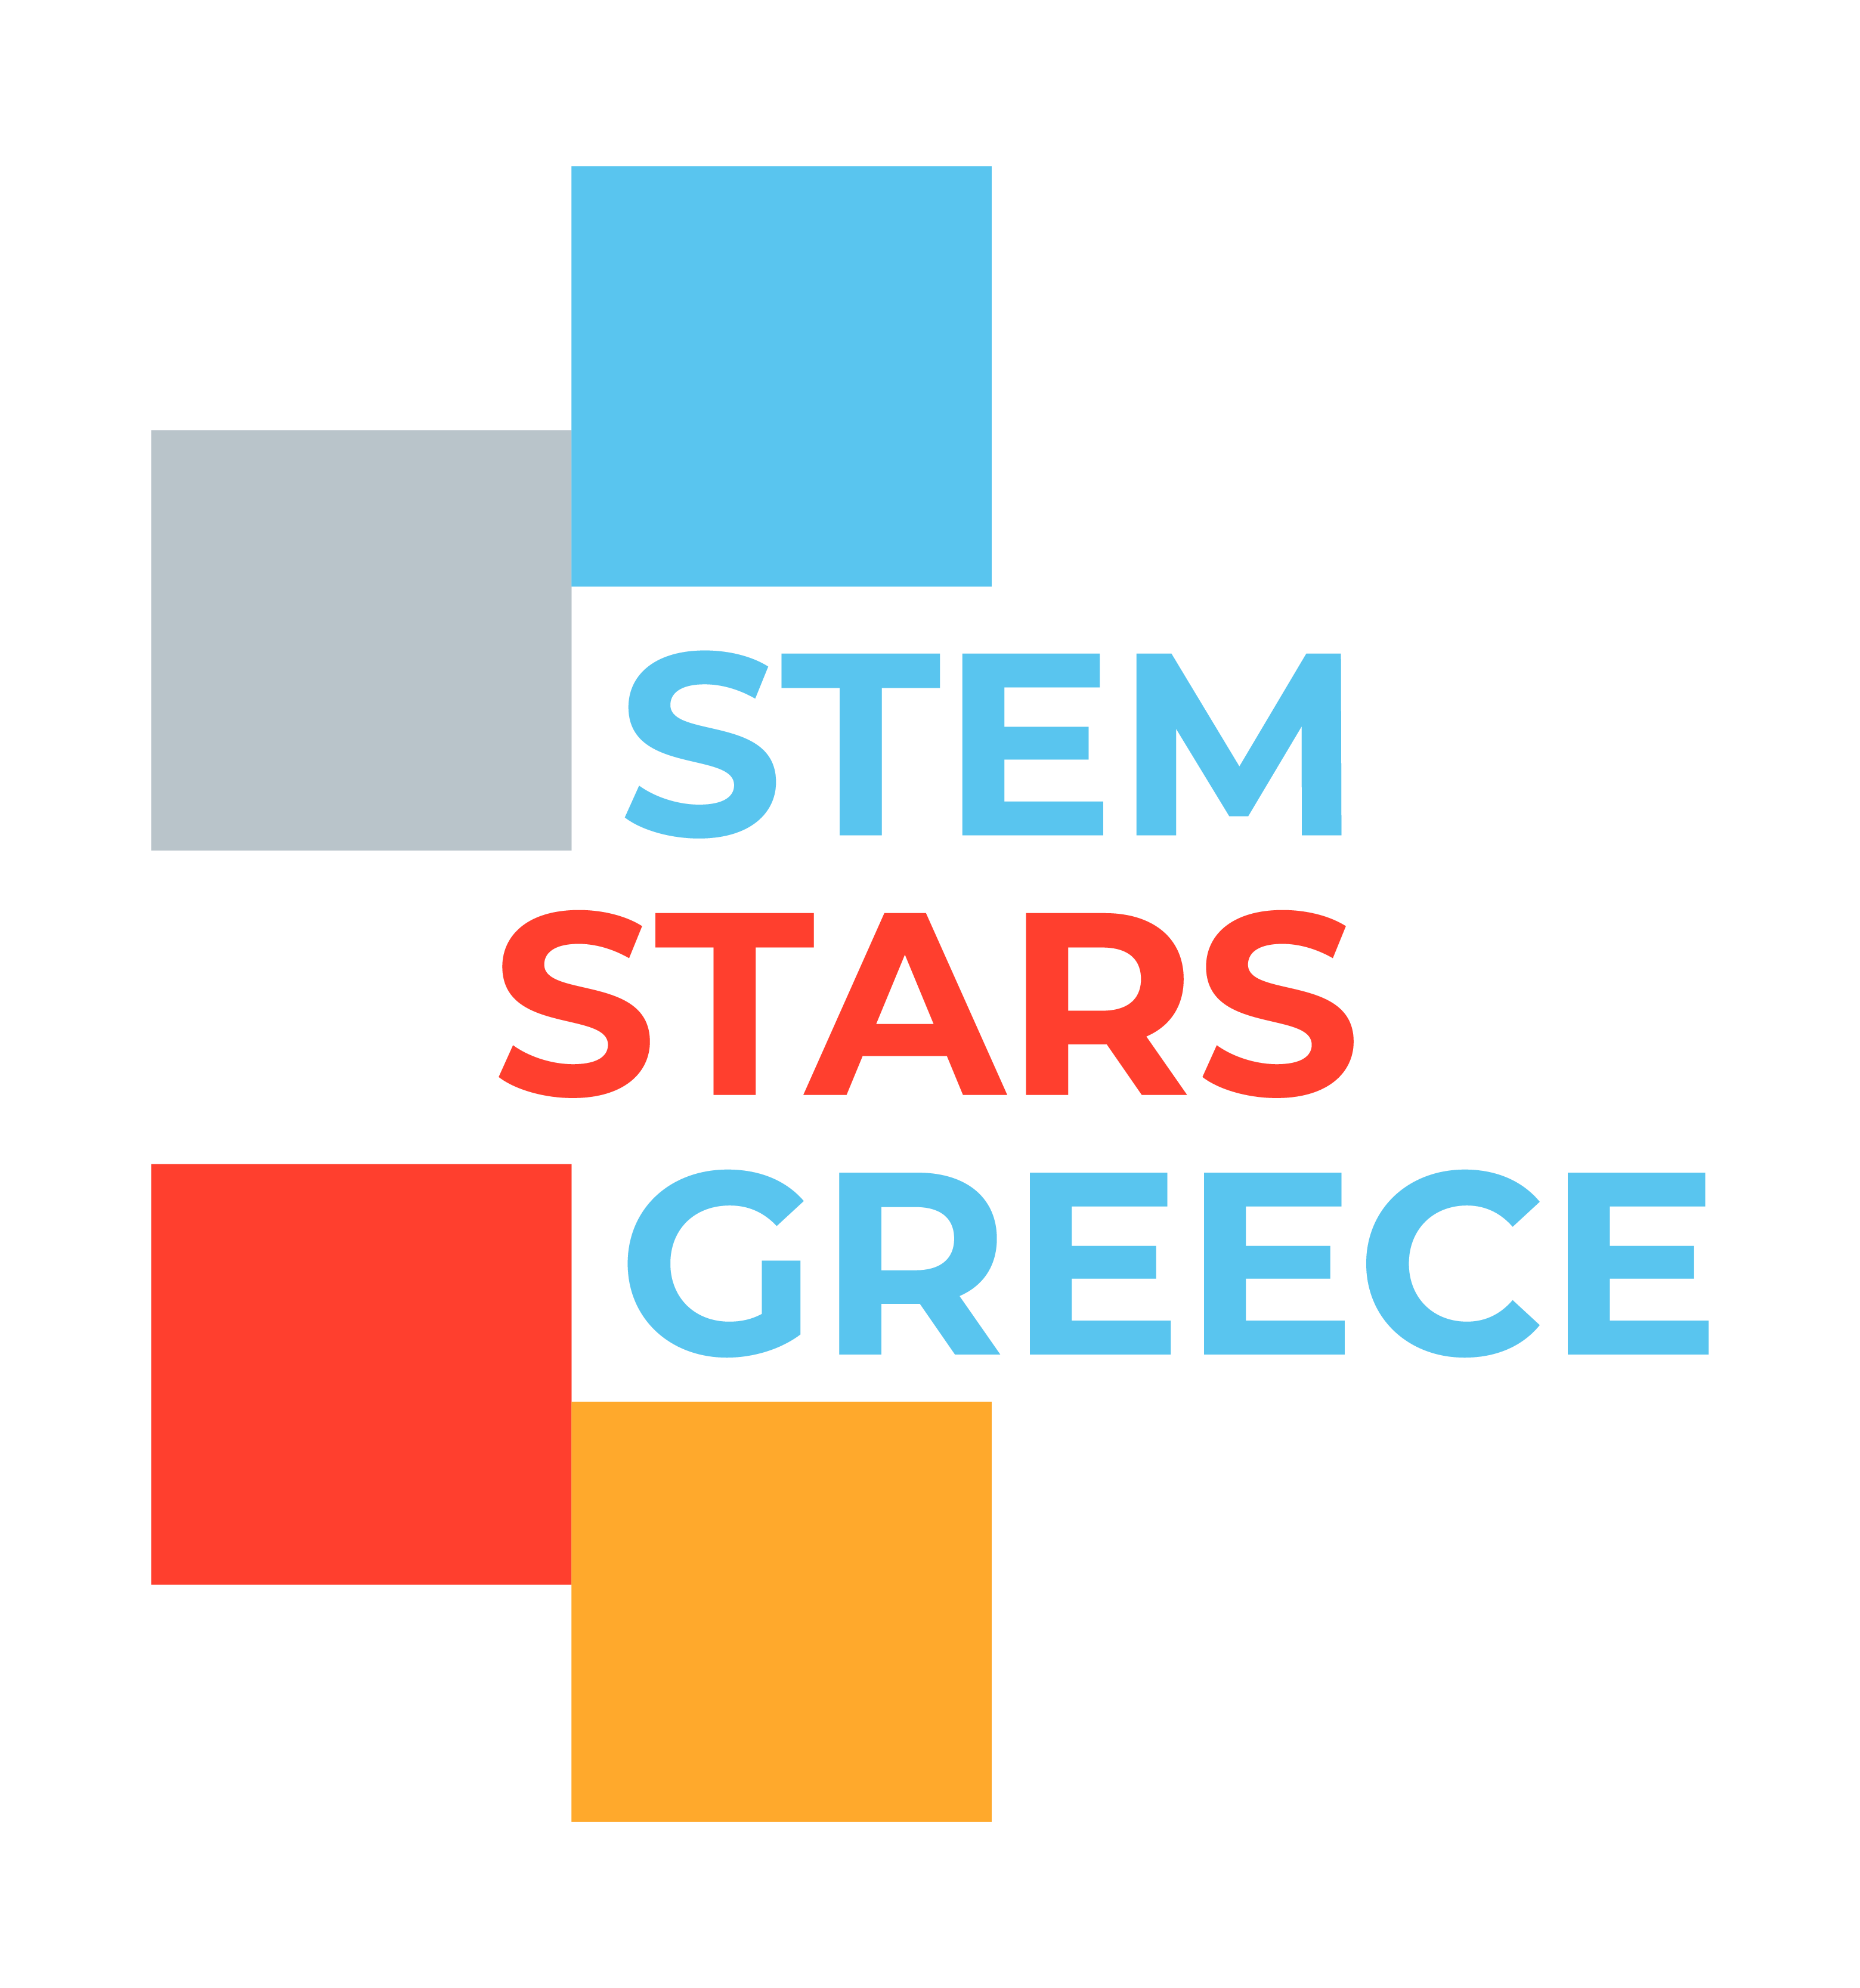 STEM Stars Greece Λογότυπο